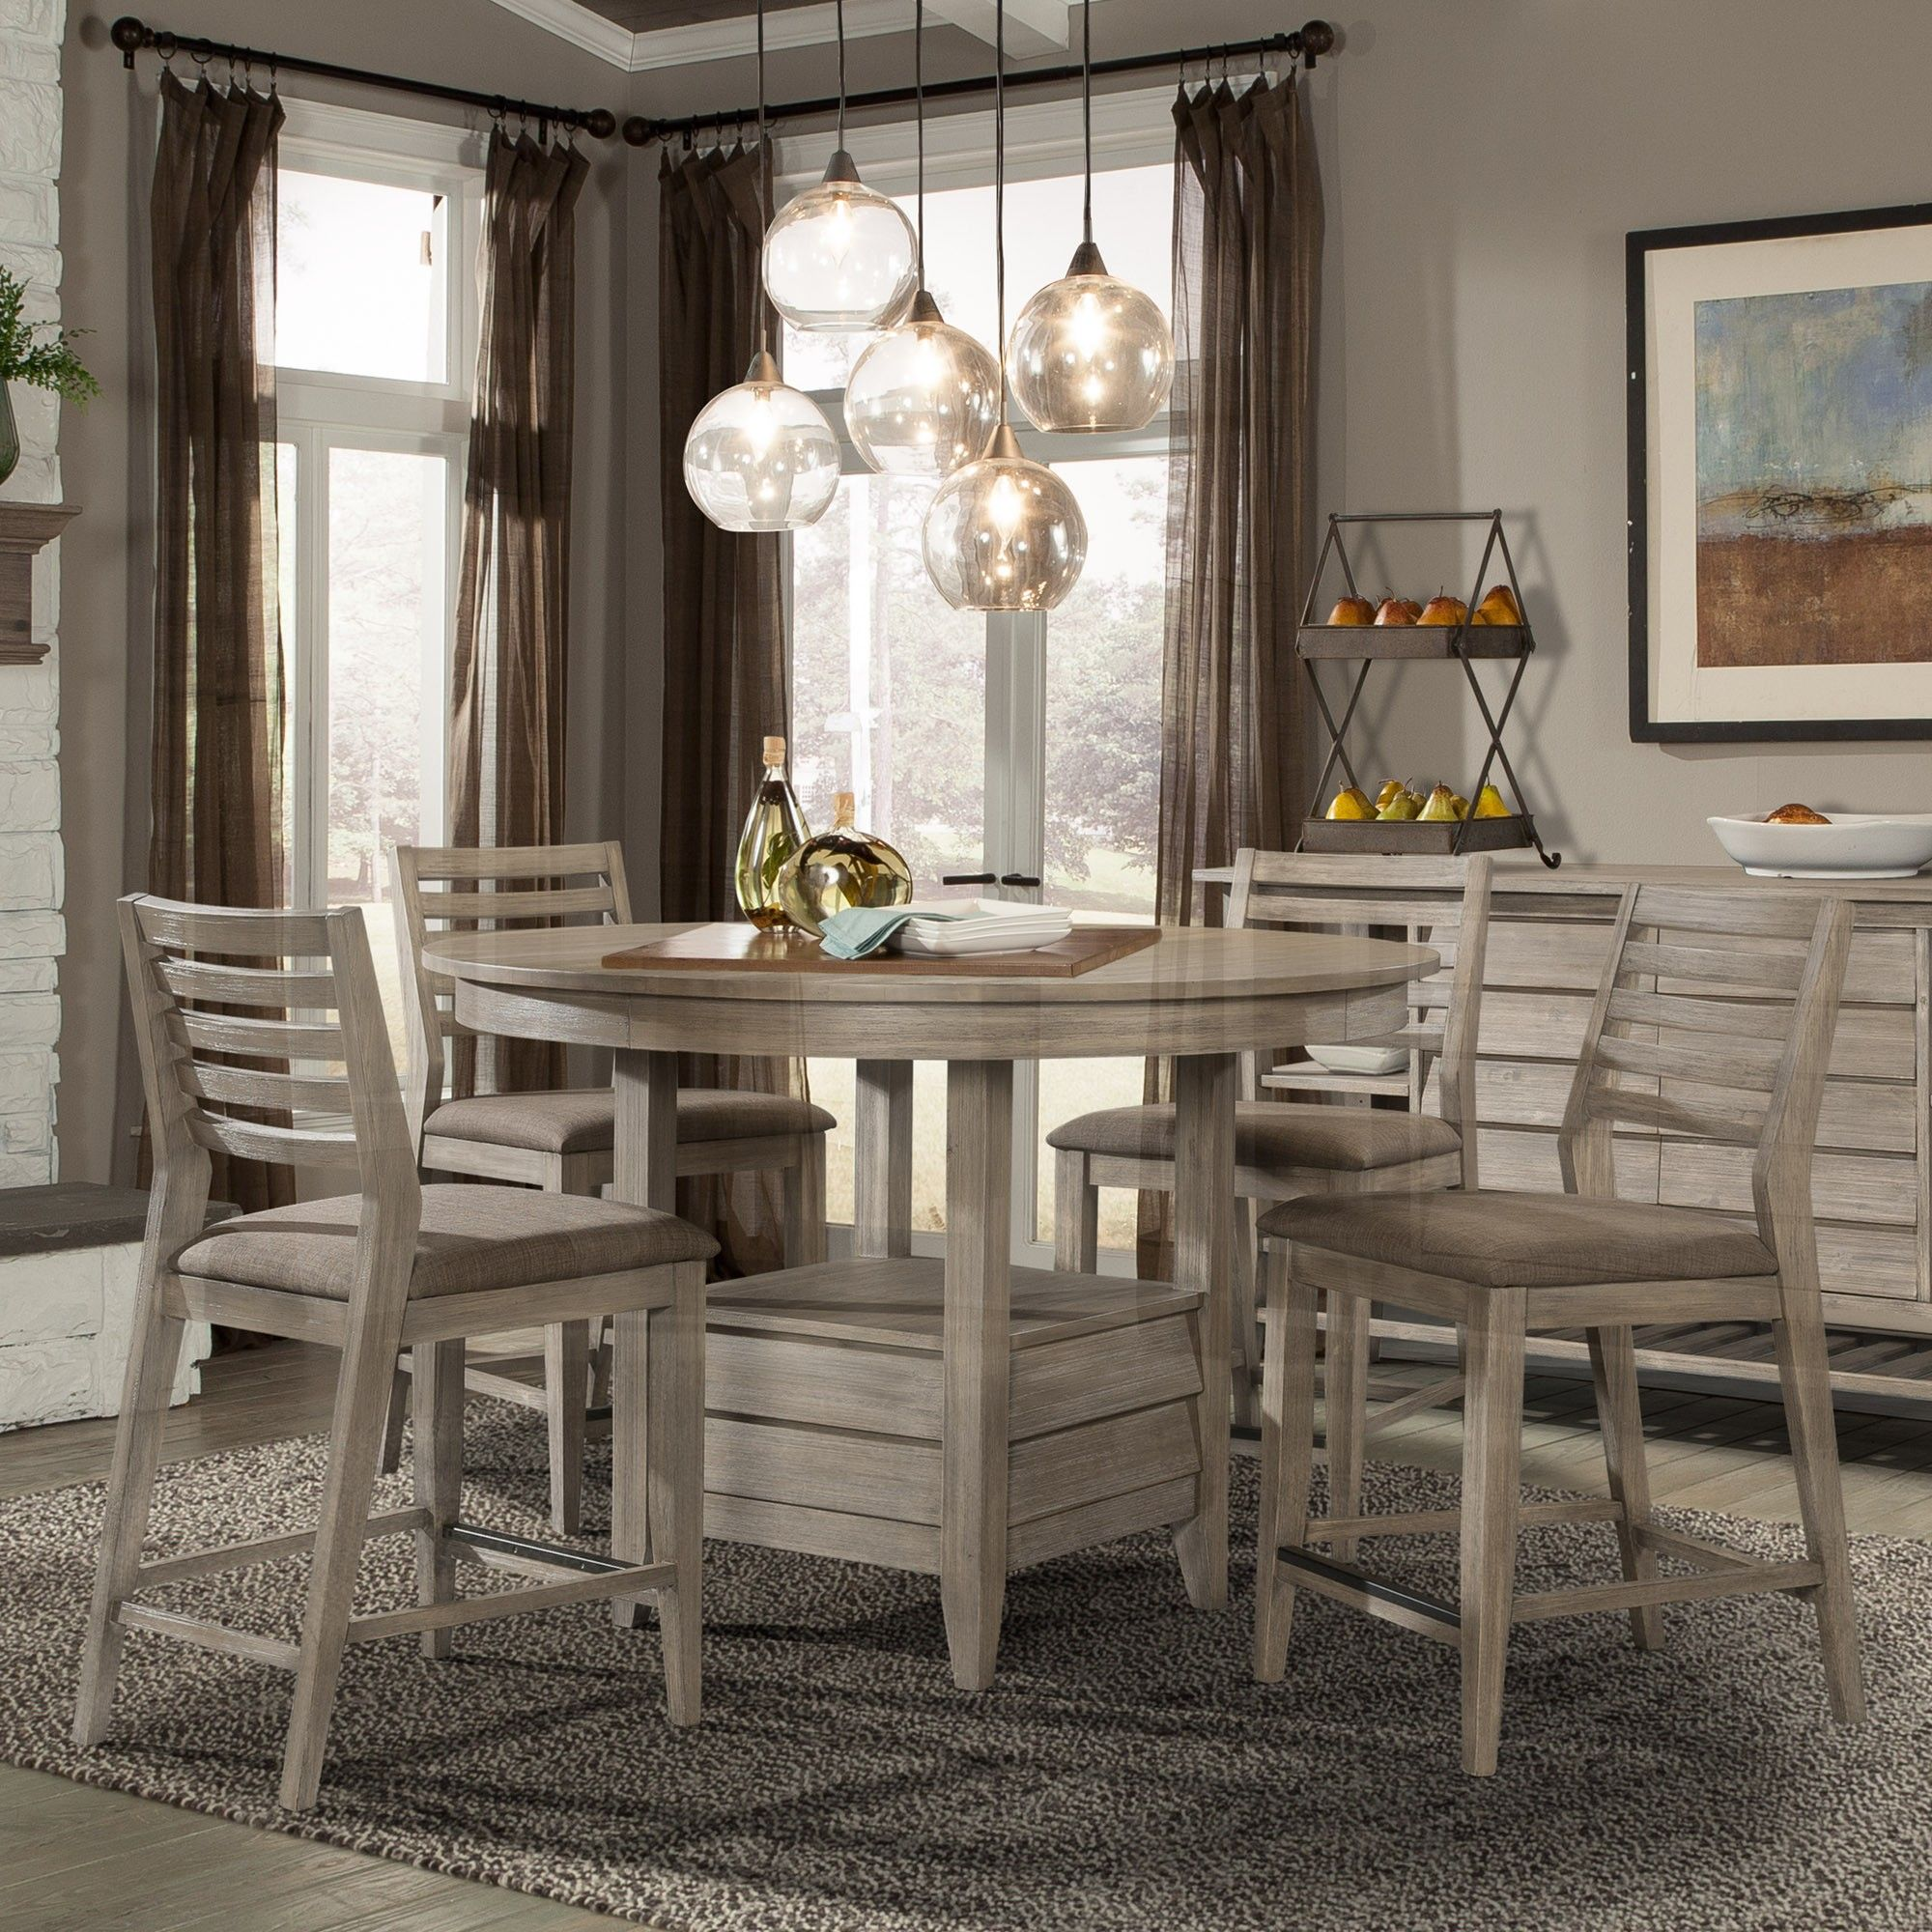 Fine Dining Furniture: Corliss Landing Dining Room Collection By Cresent Fine